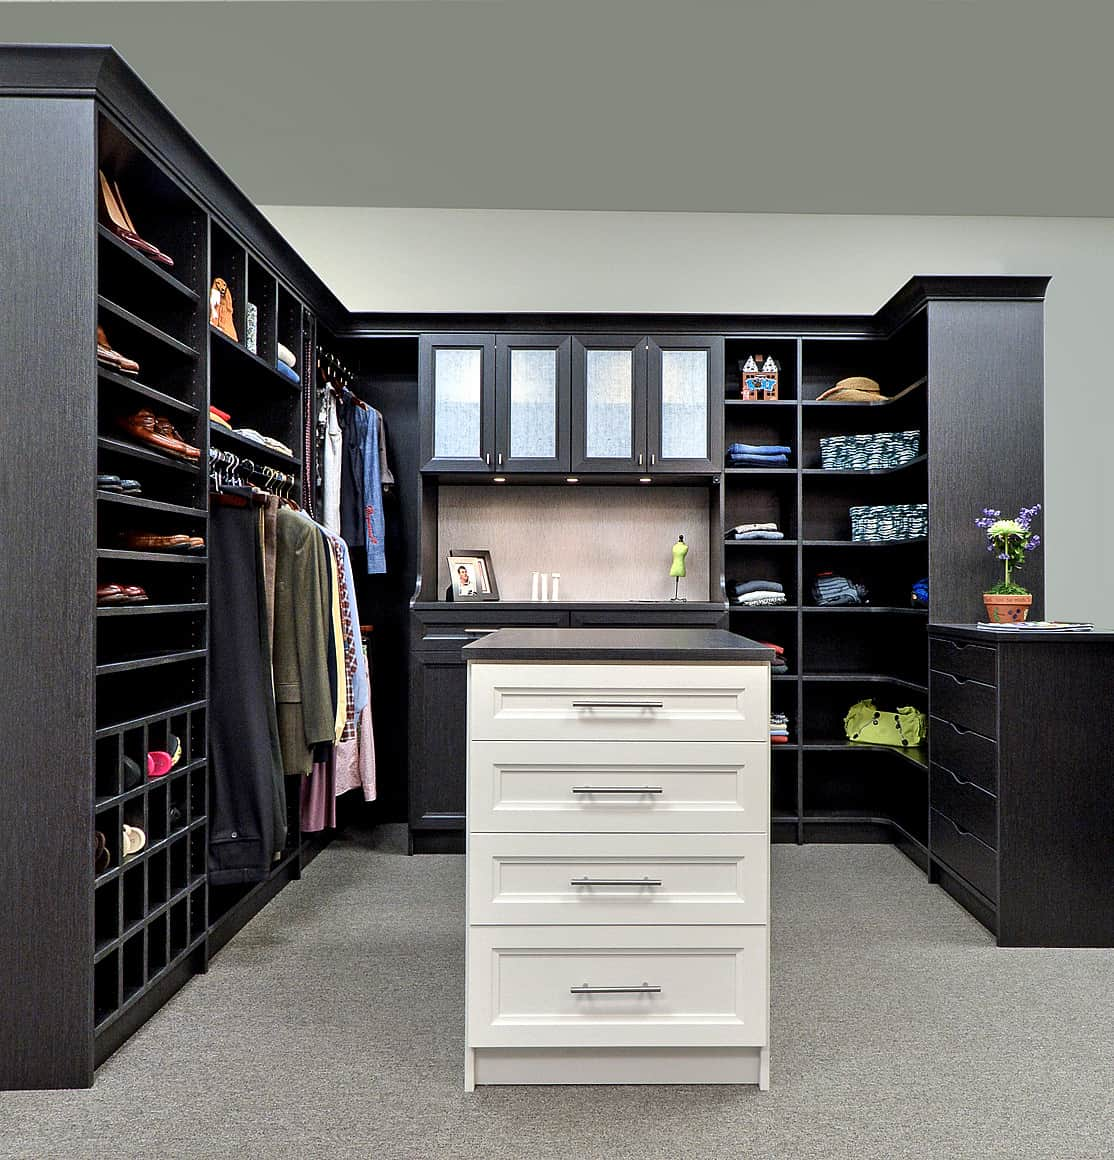 Modular black cabinets along with granite countertop add a striking contrast to the white island that's fitted with drawers and chrome pulls. This walk-in closet has gray walls that blend in with the carpet flooring.